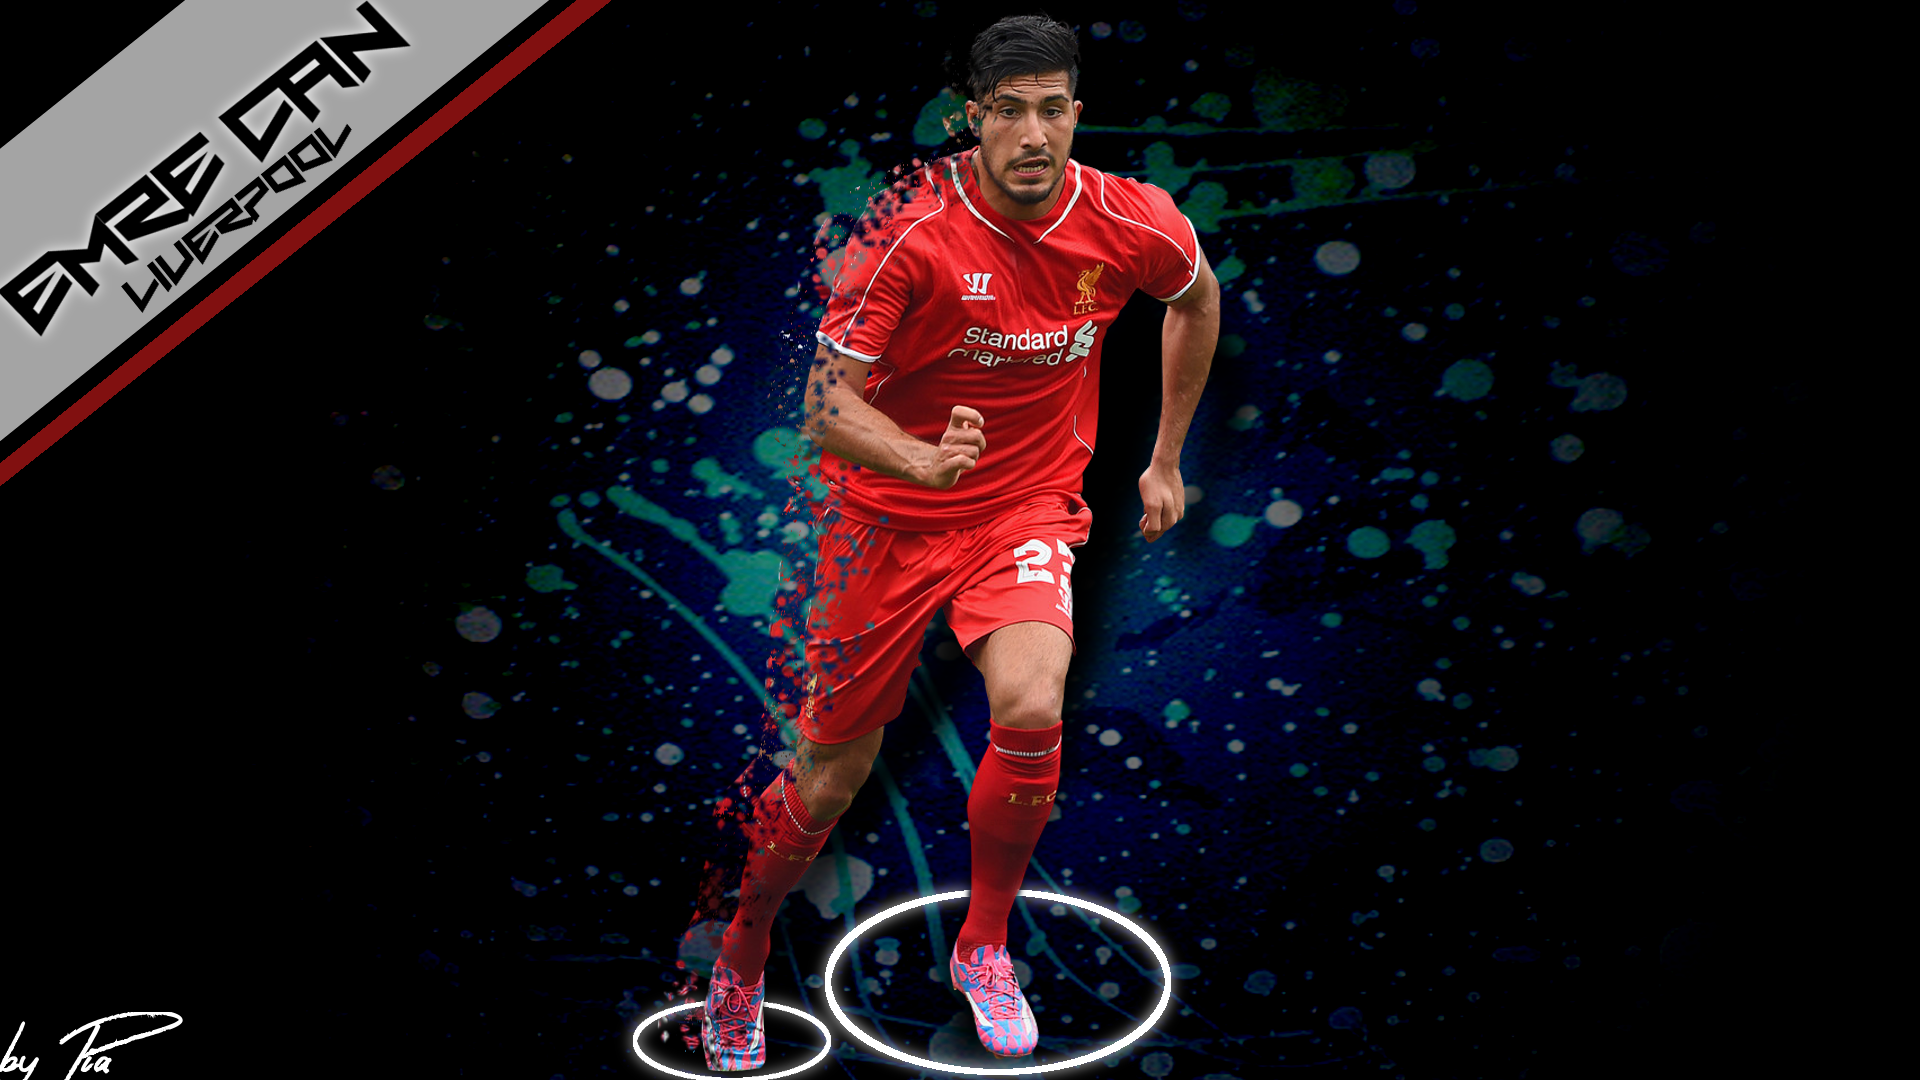 Emre Can Wallpaper By PiaDesigns On DeviantArt